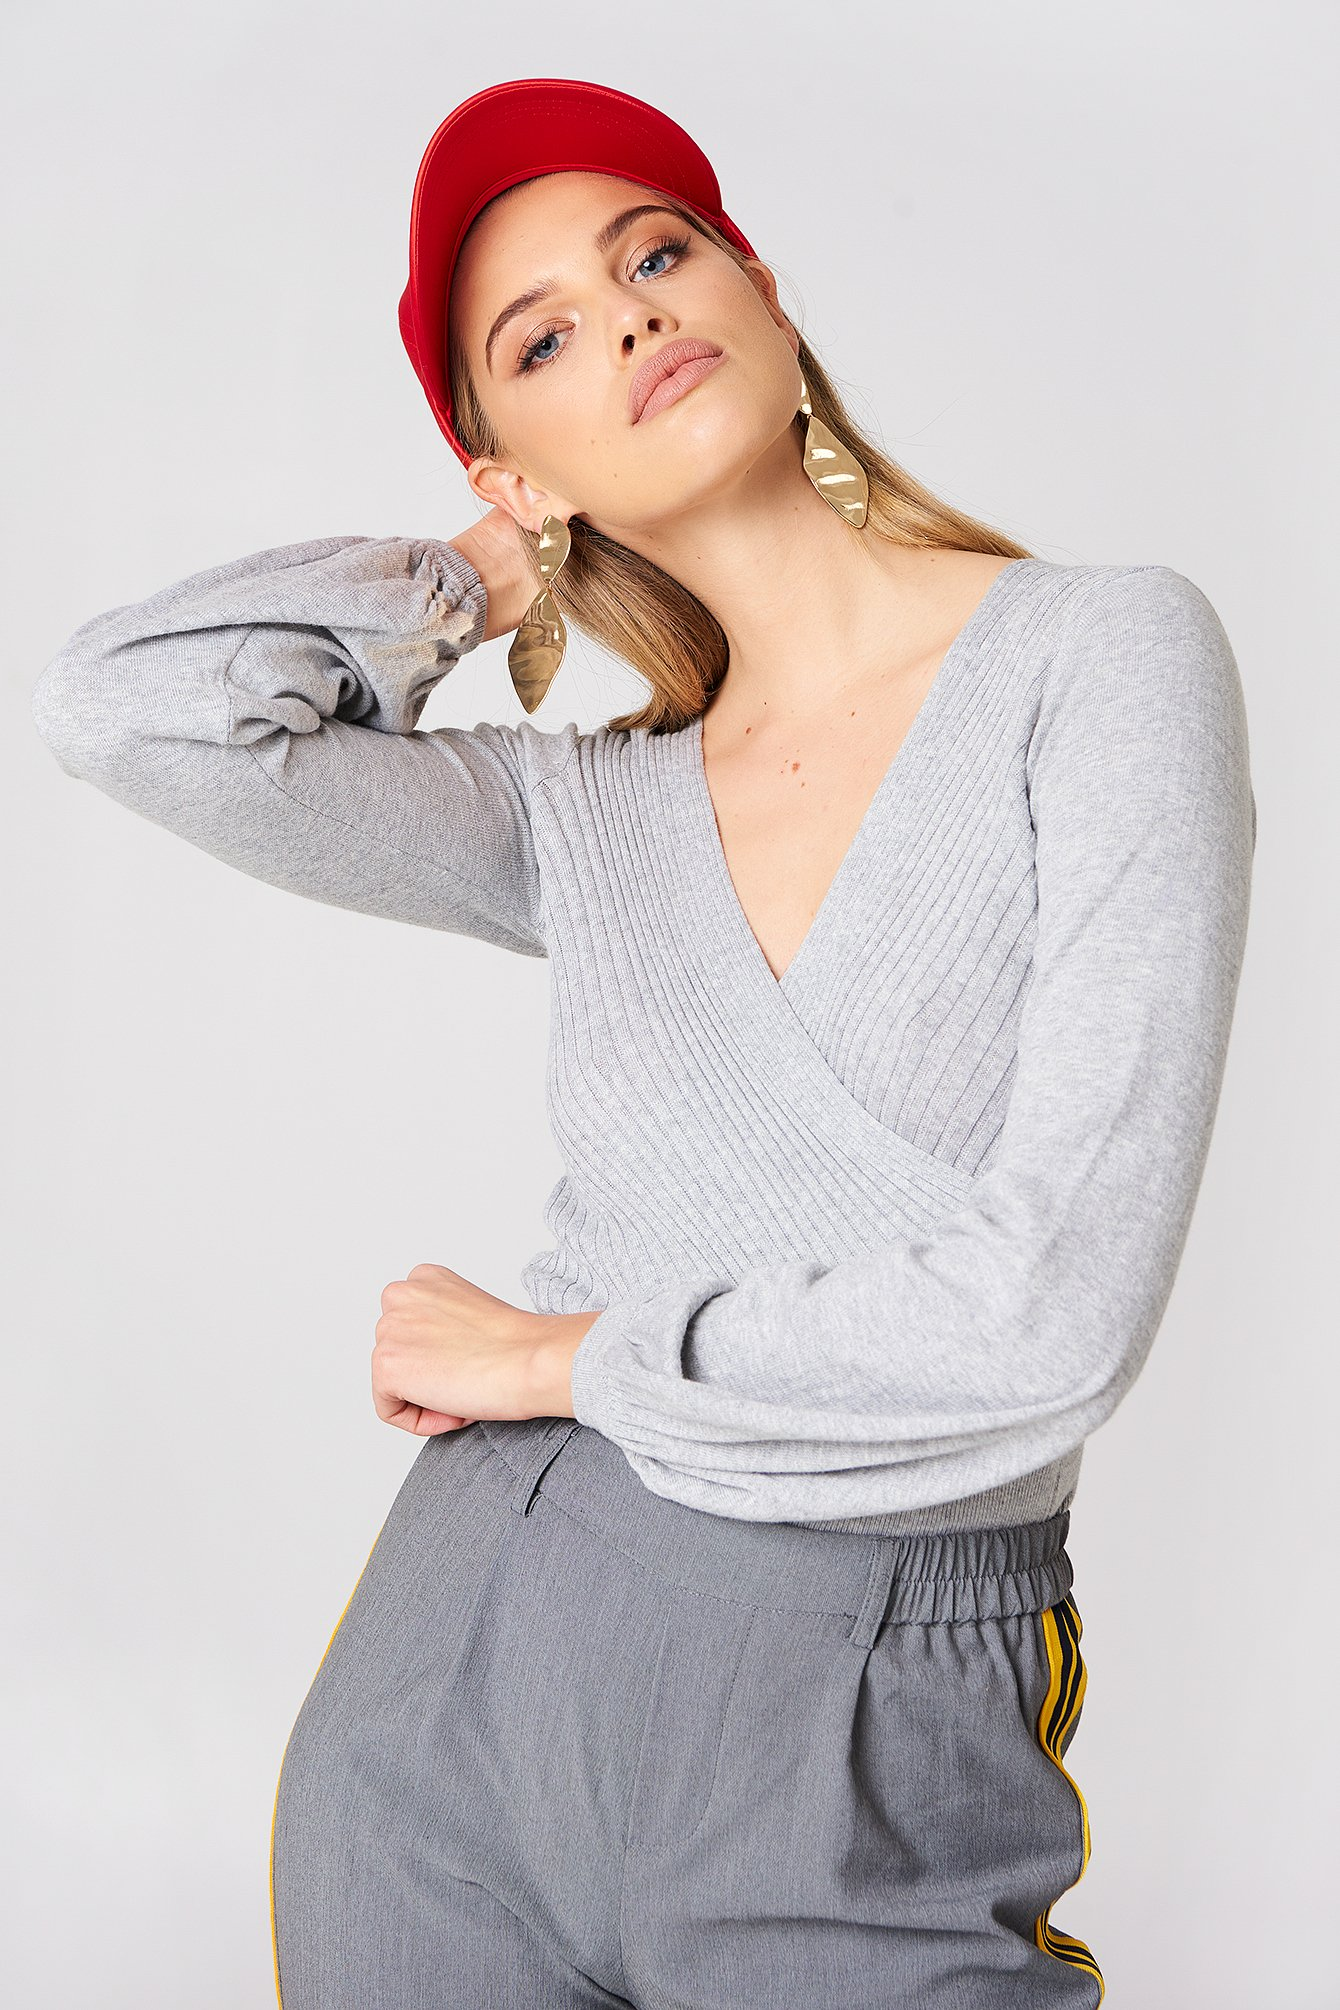 Minkpink Laura Knitted Wrap Top - Grey 1490-000028-0111